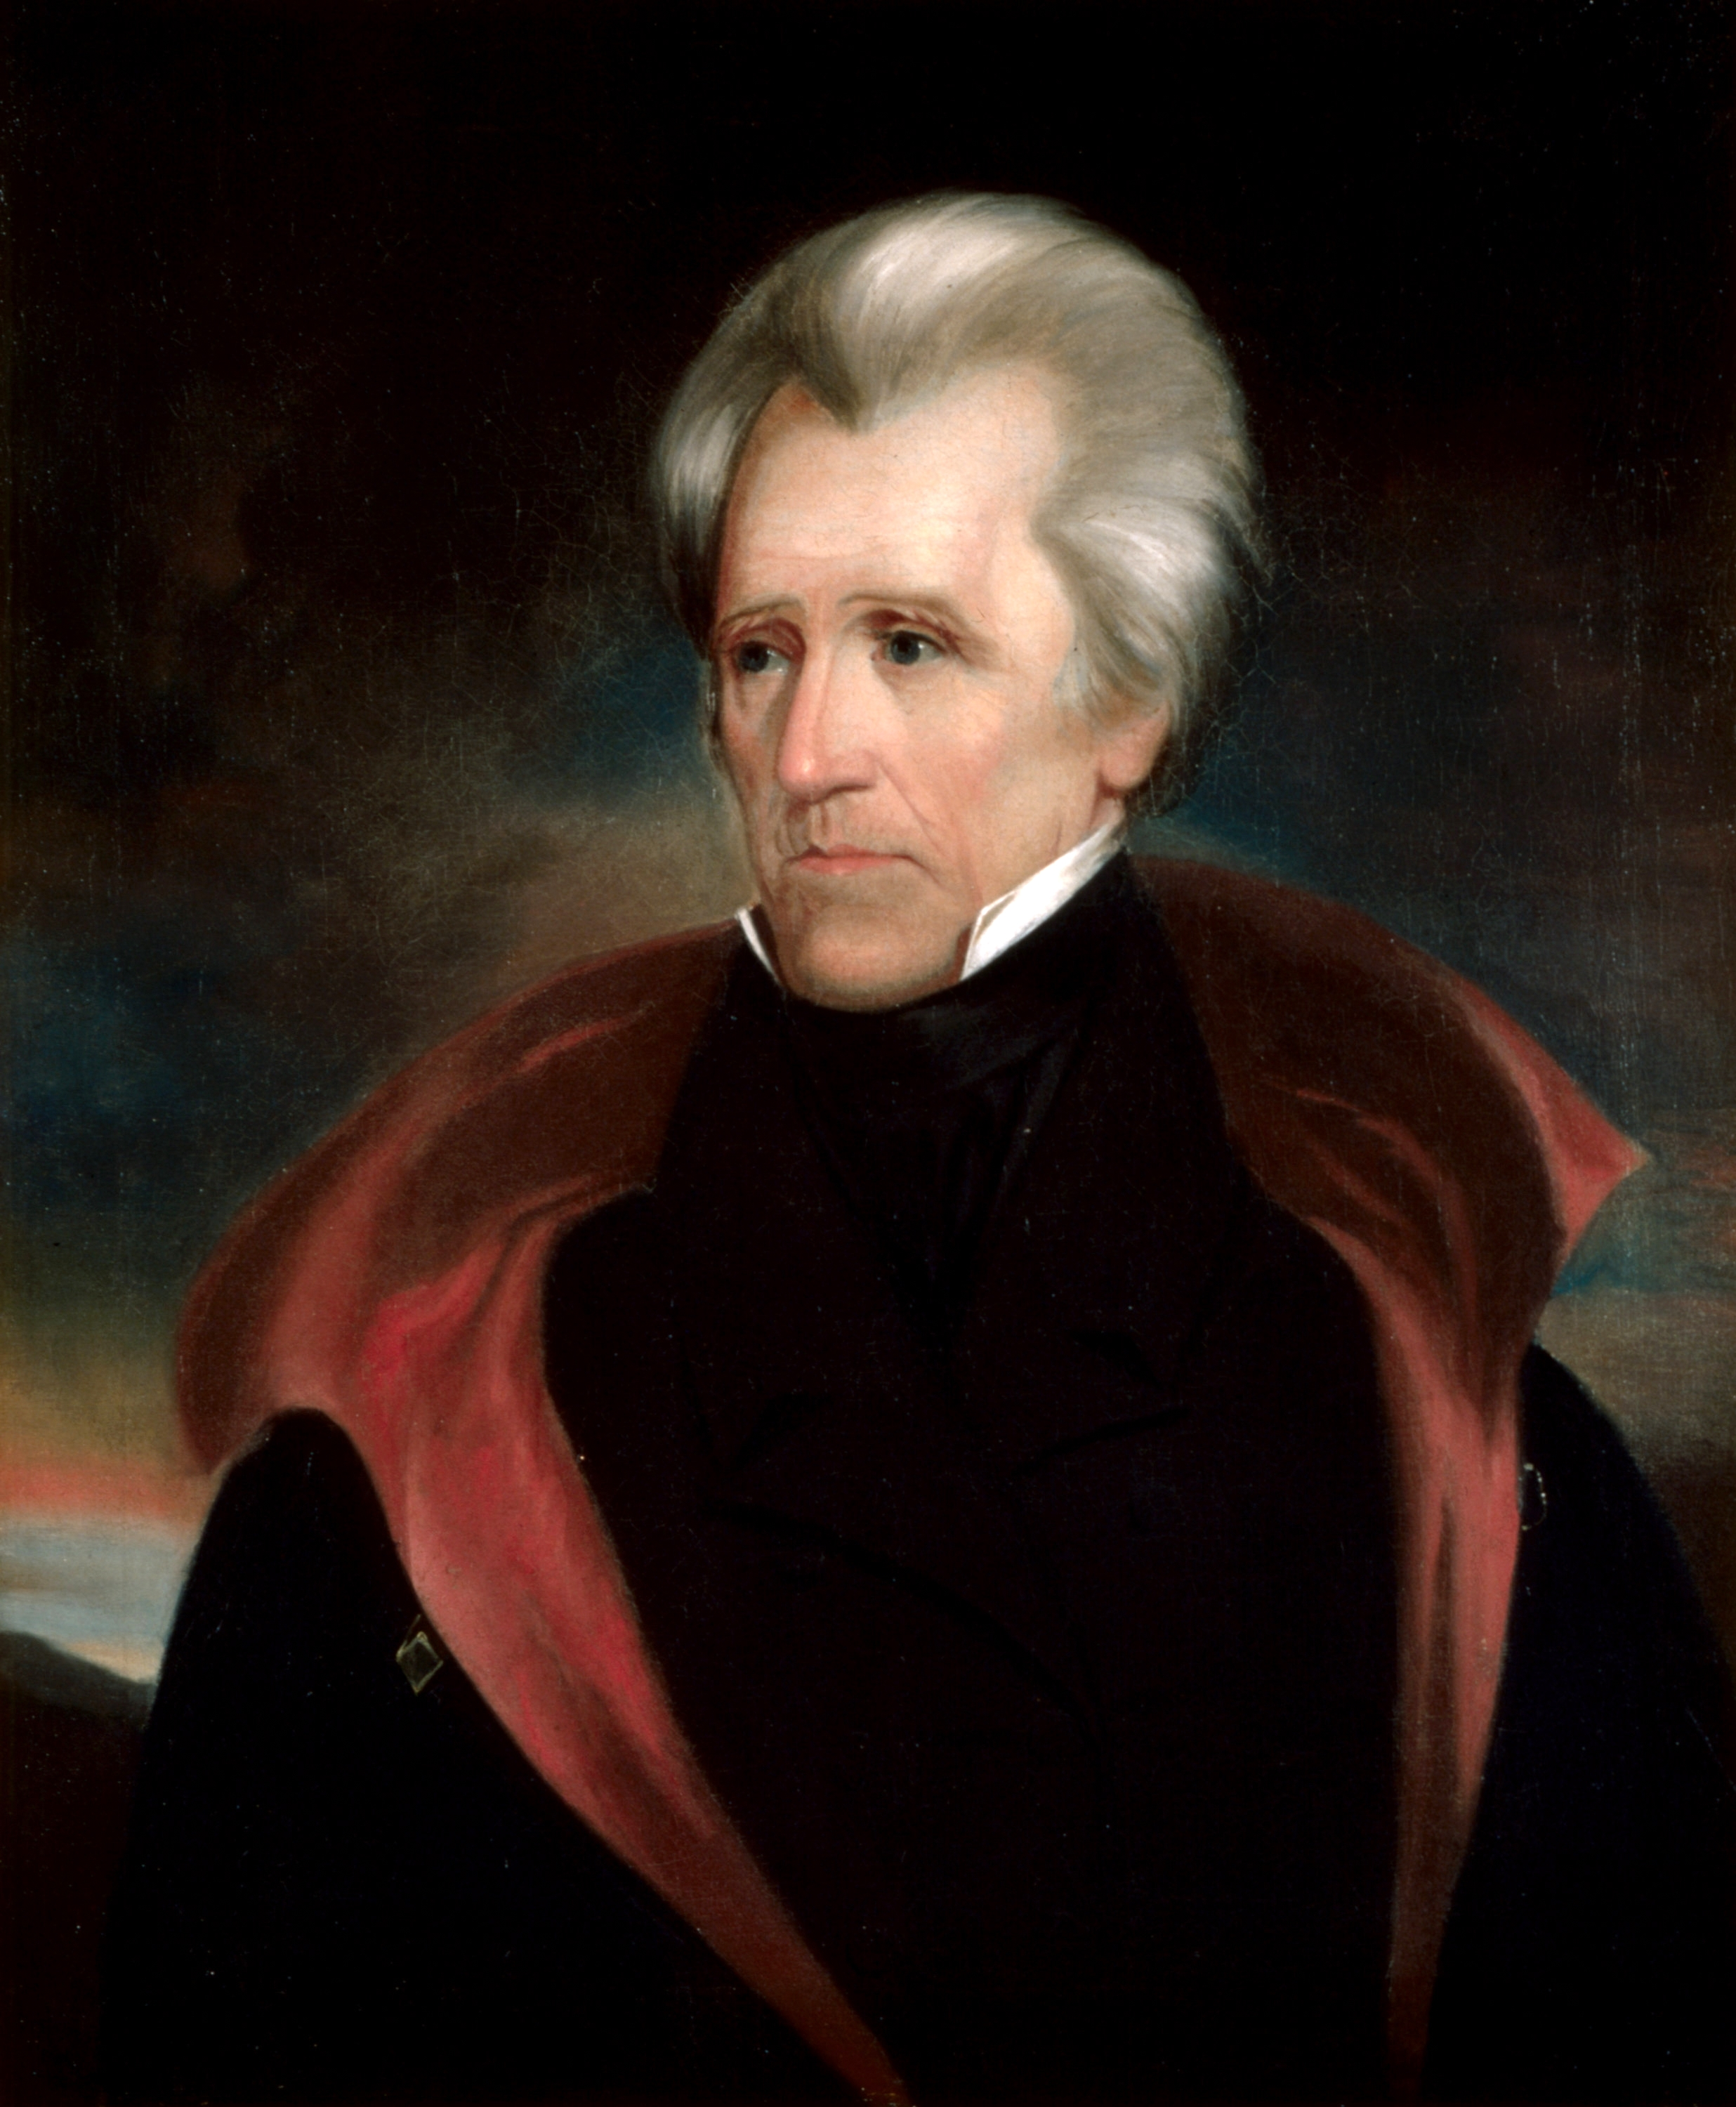 Ritratto di Andrew Jackson by Ralph Eleaser Whiteside Earl